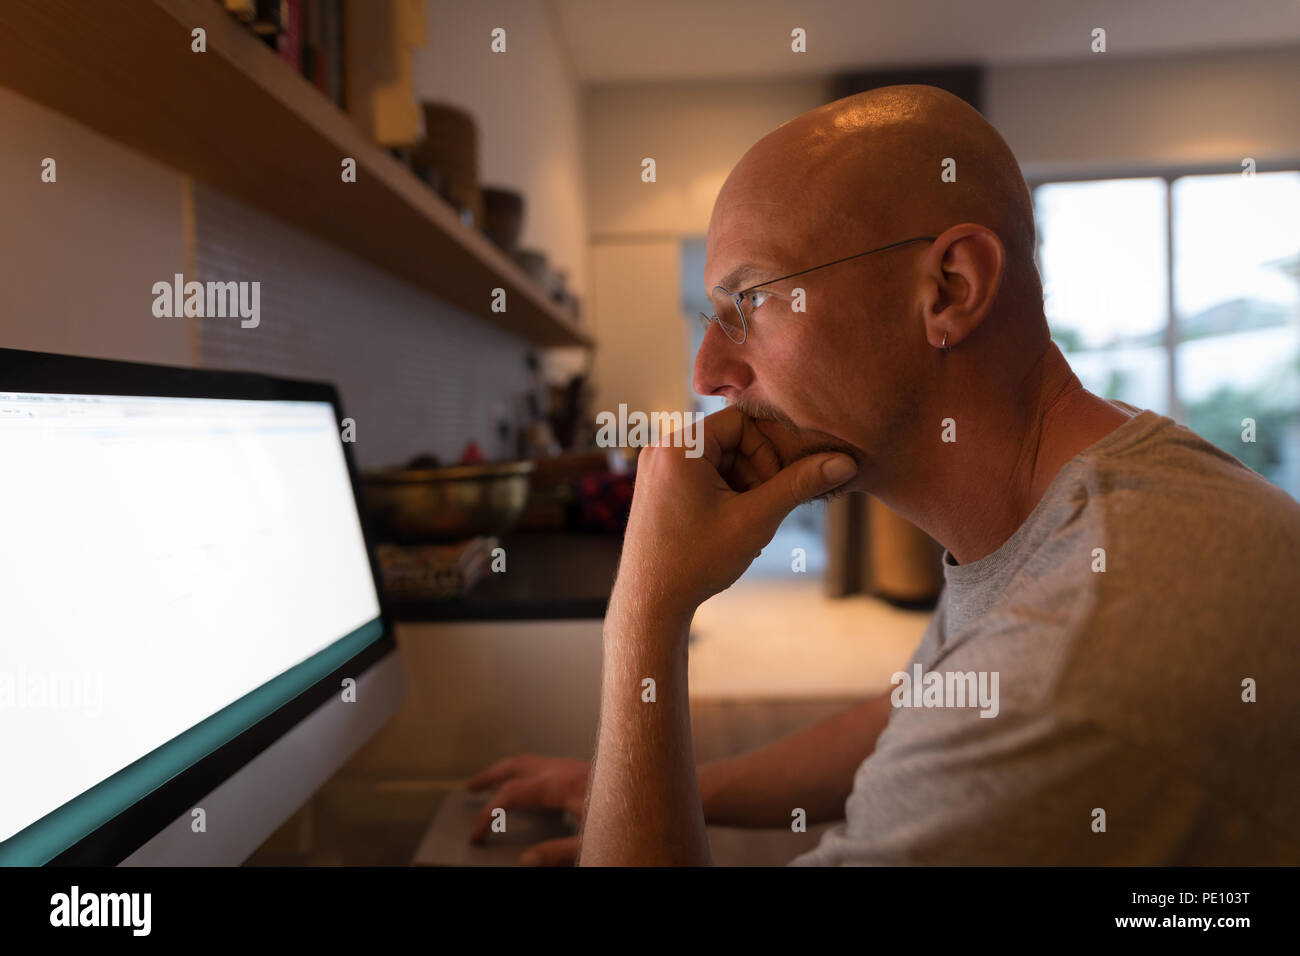 Man working on personal computer - Stock Image